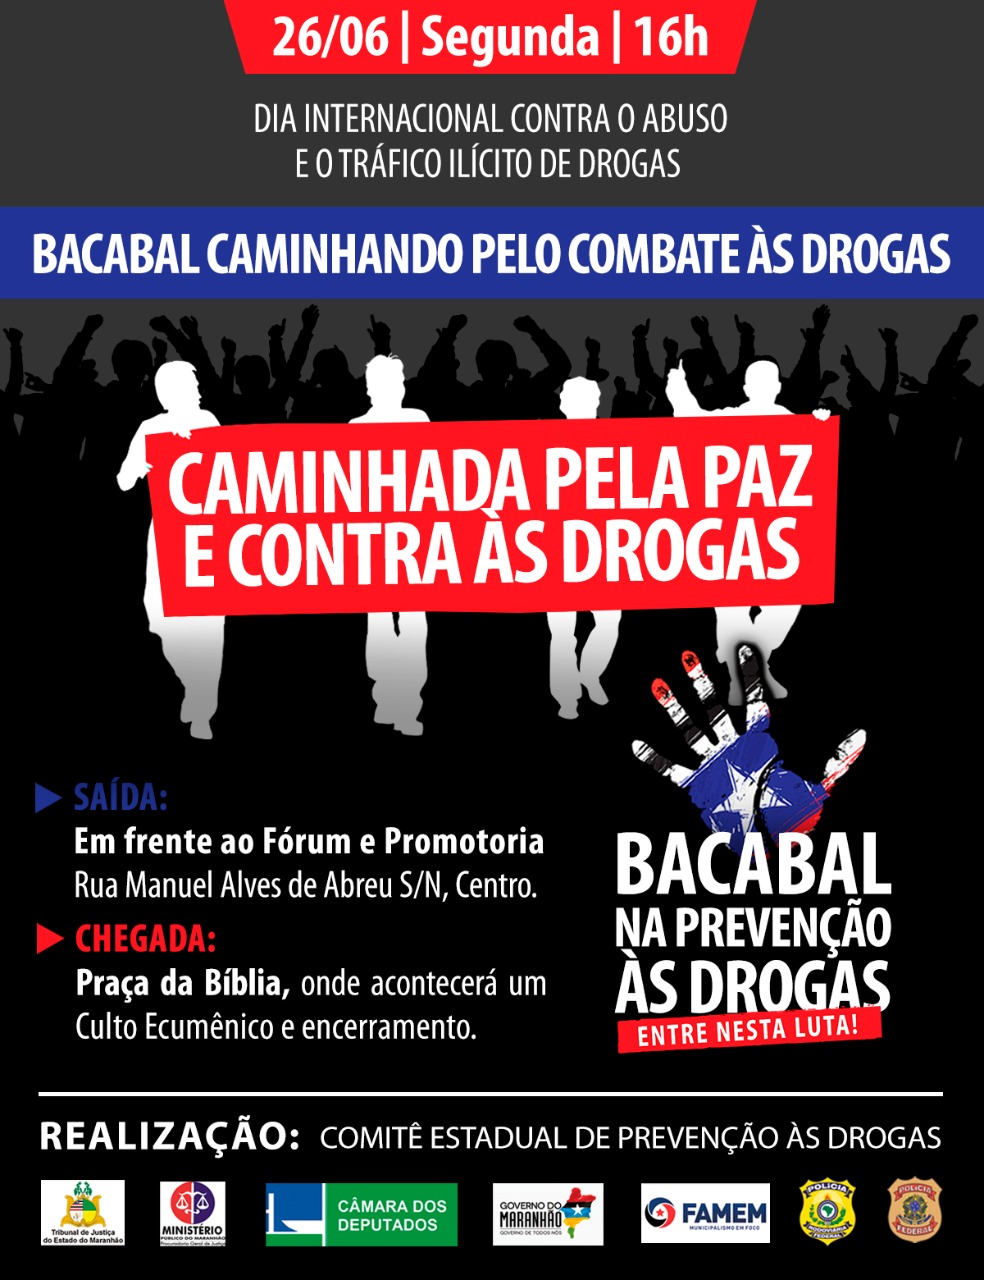 BACABAL CONTRA AS DROGAS